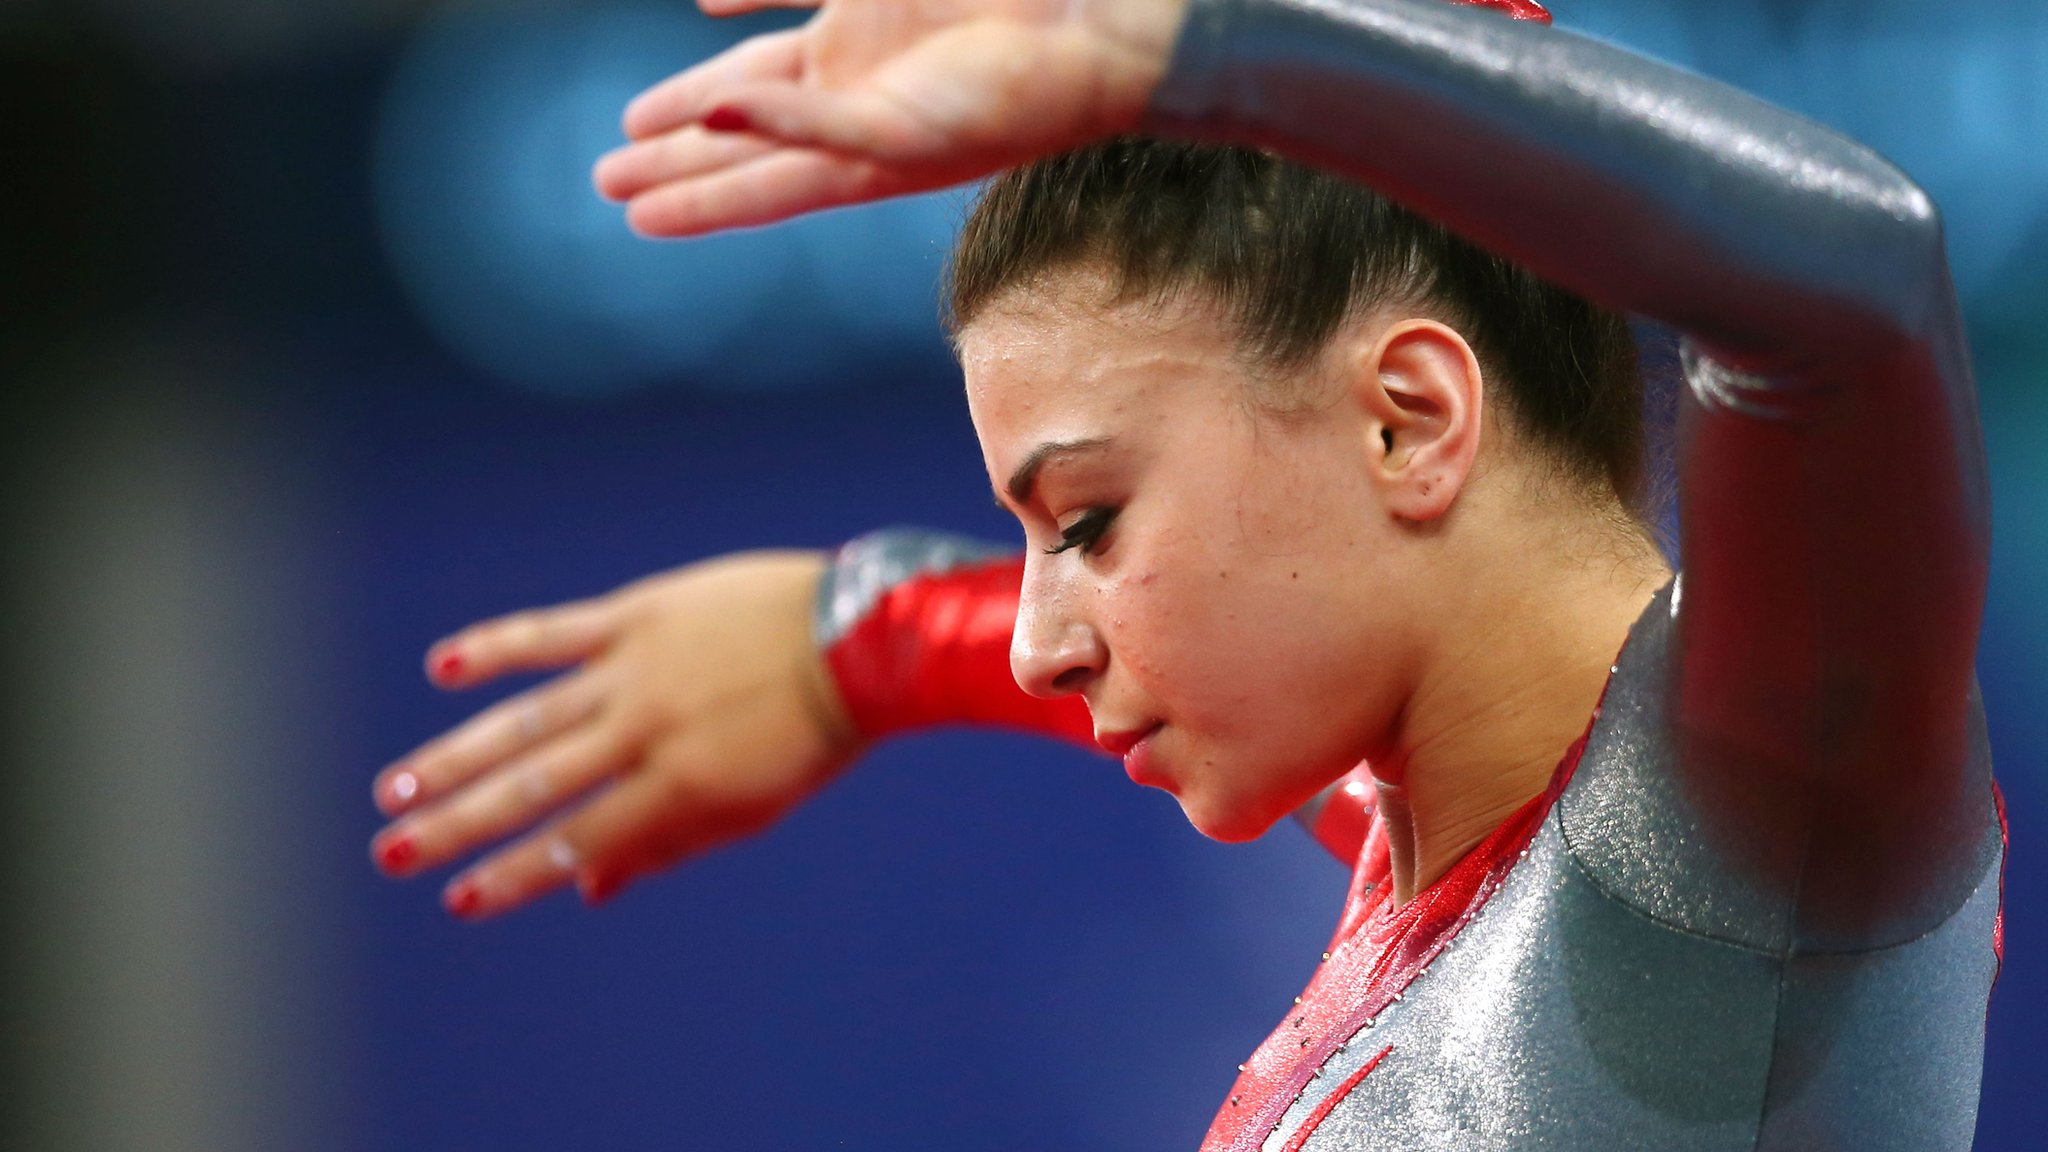 Commonwealth Games: Max Whitlock and Claudia Fragapane selected for England